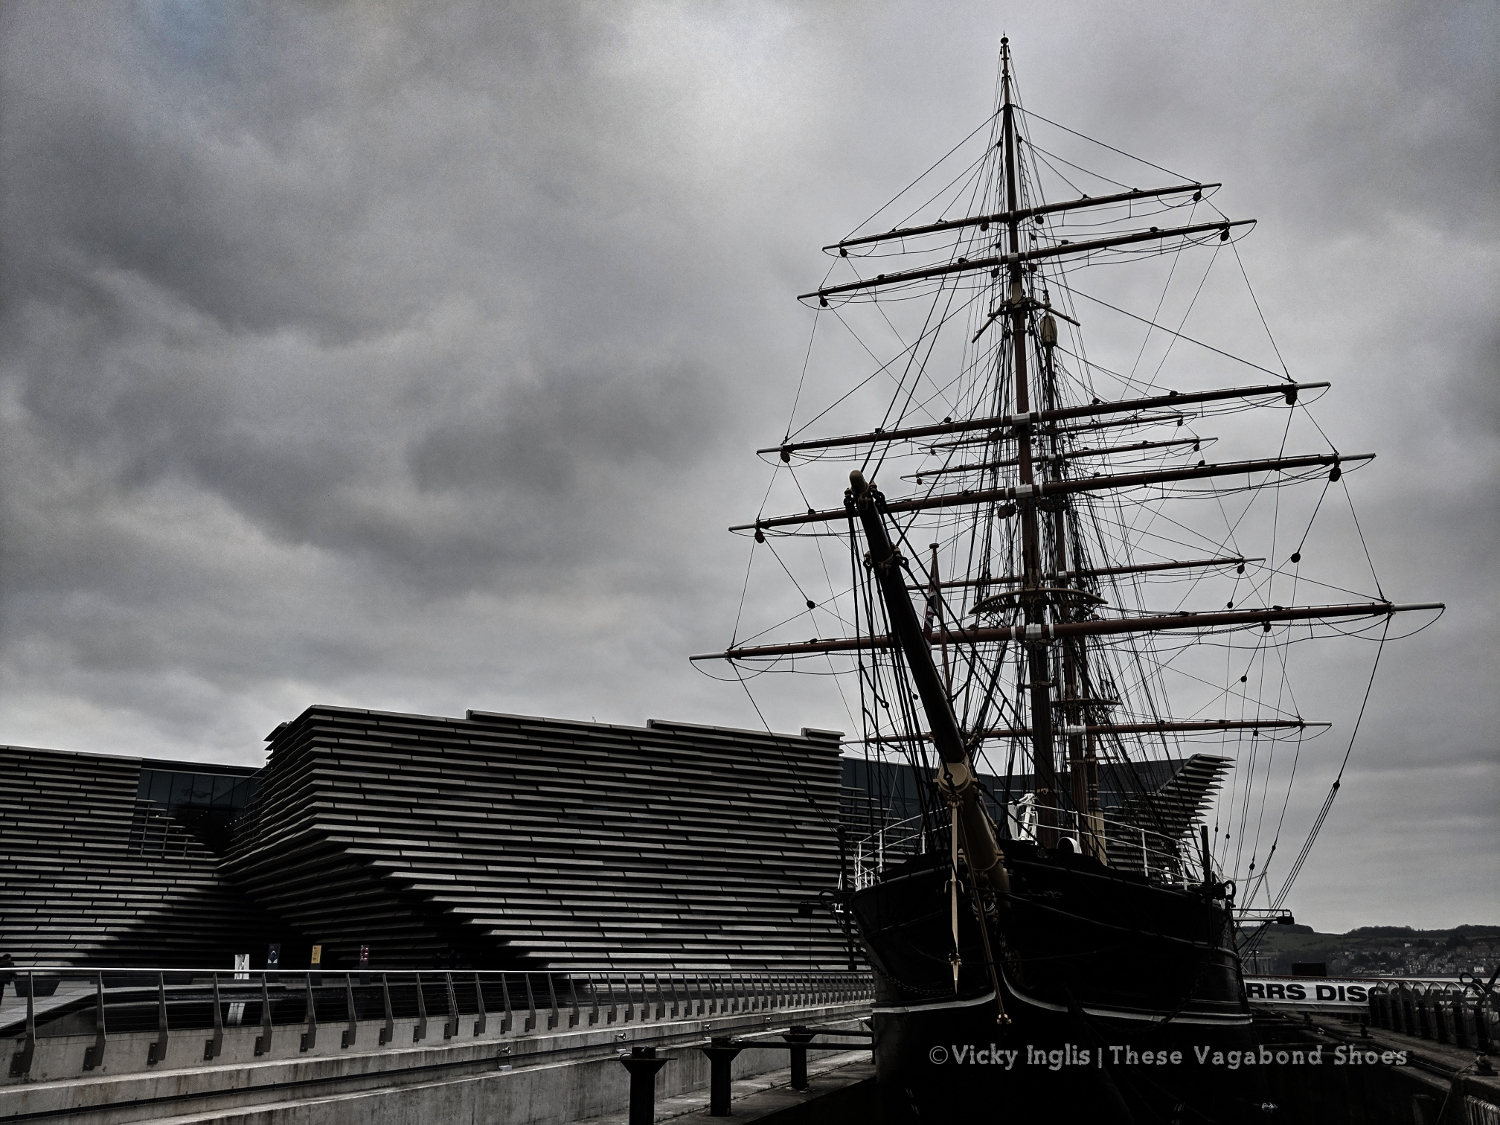 dundee_discovery_1_small